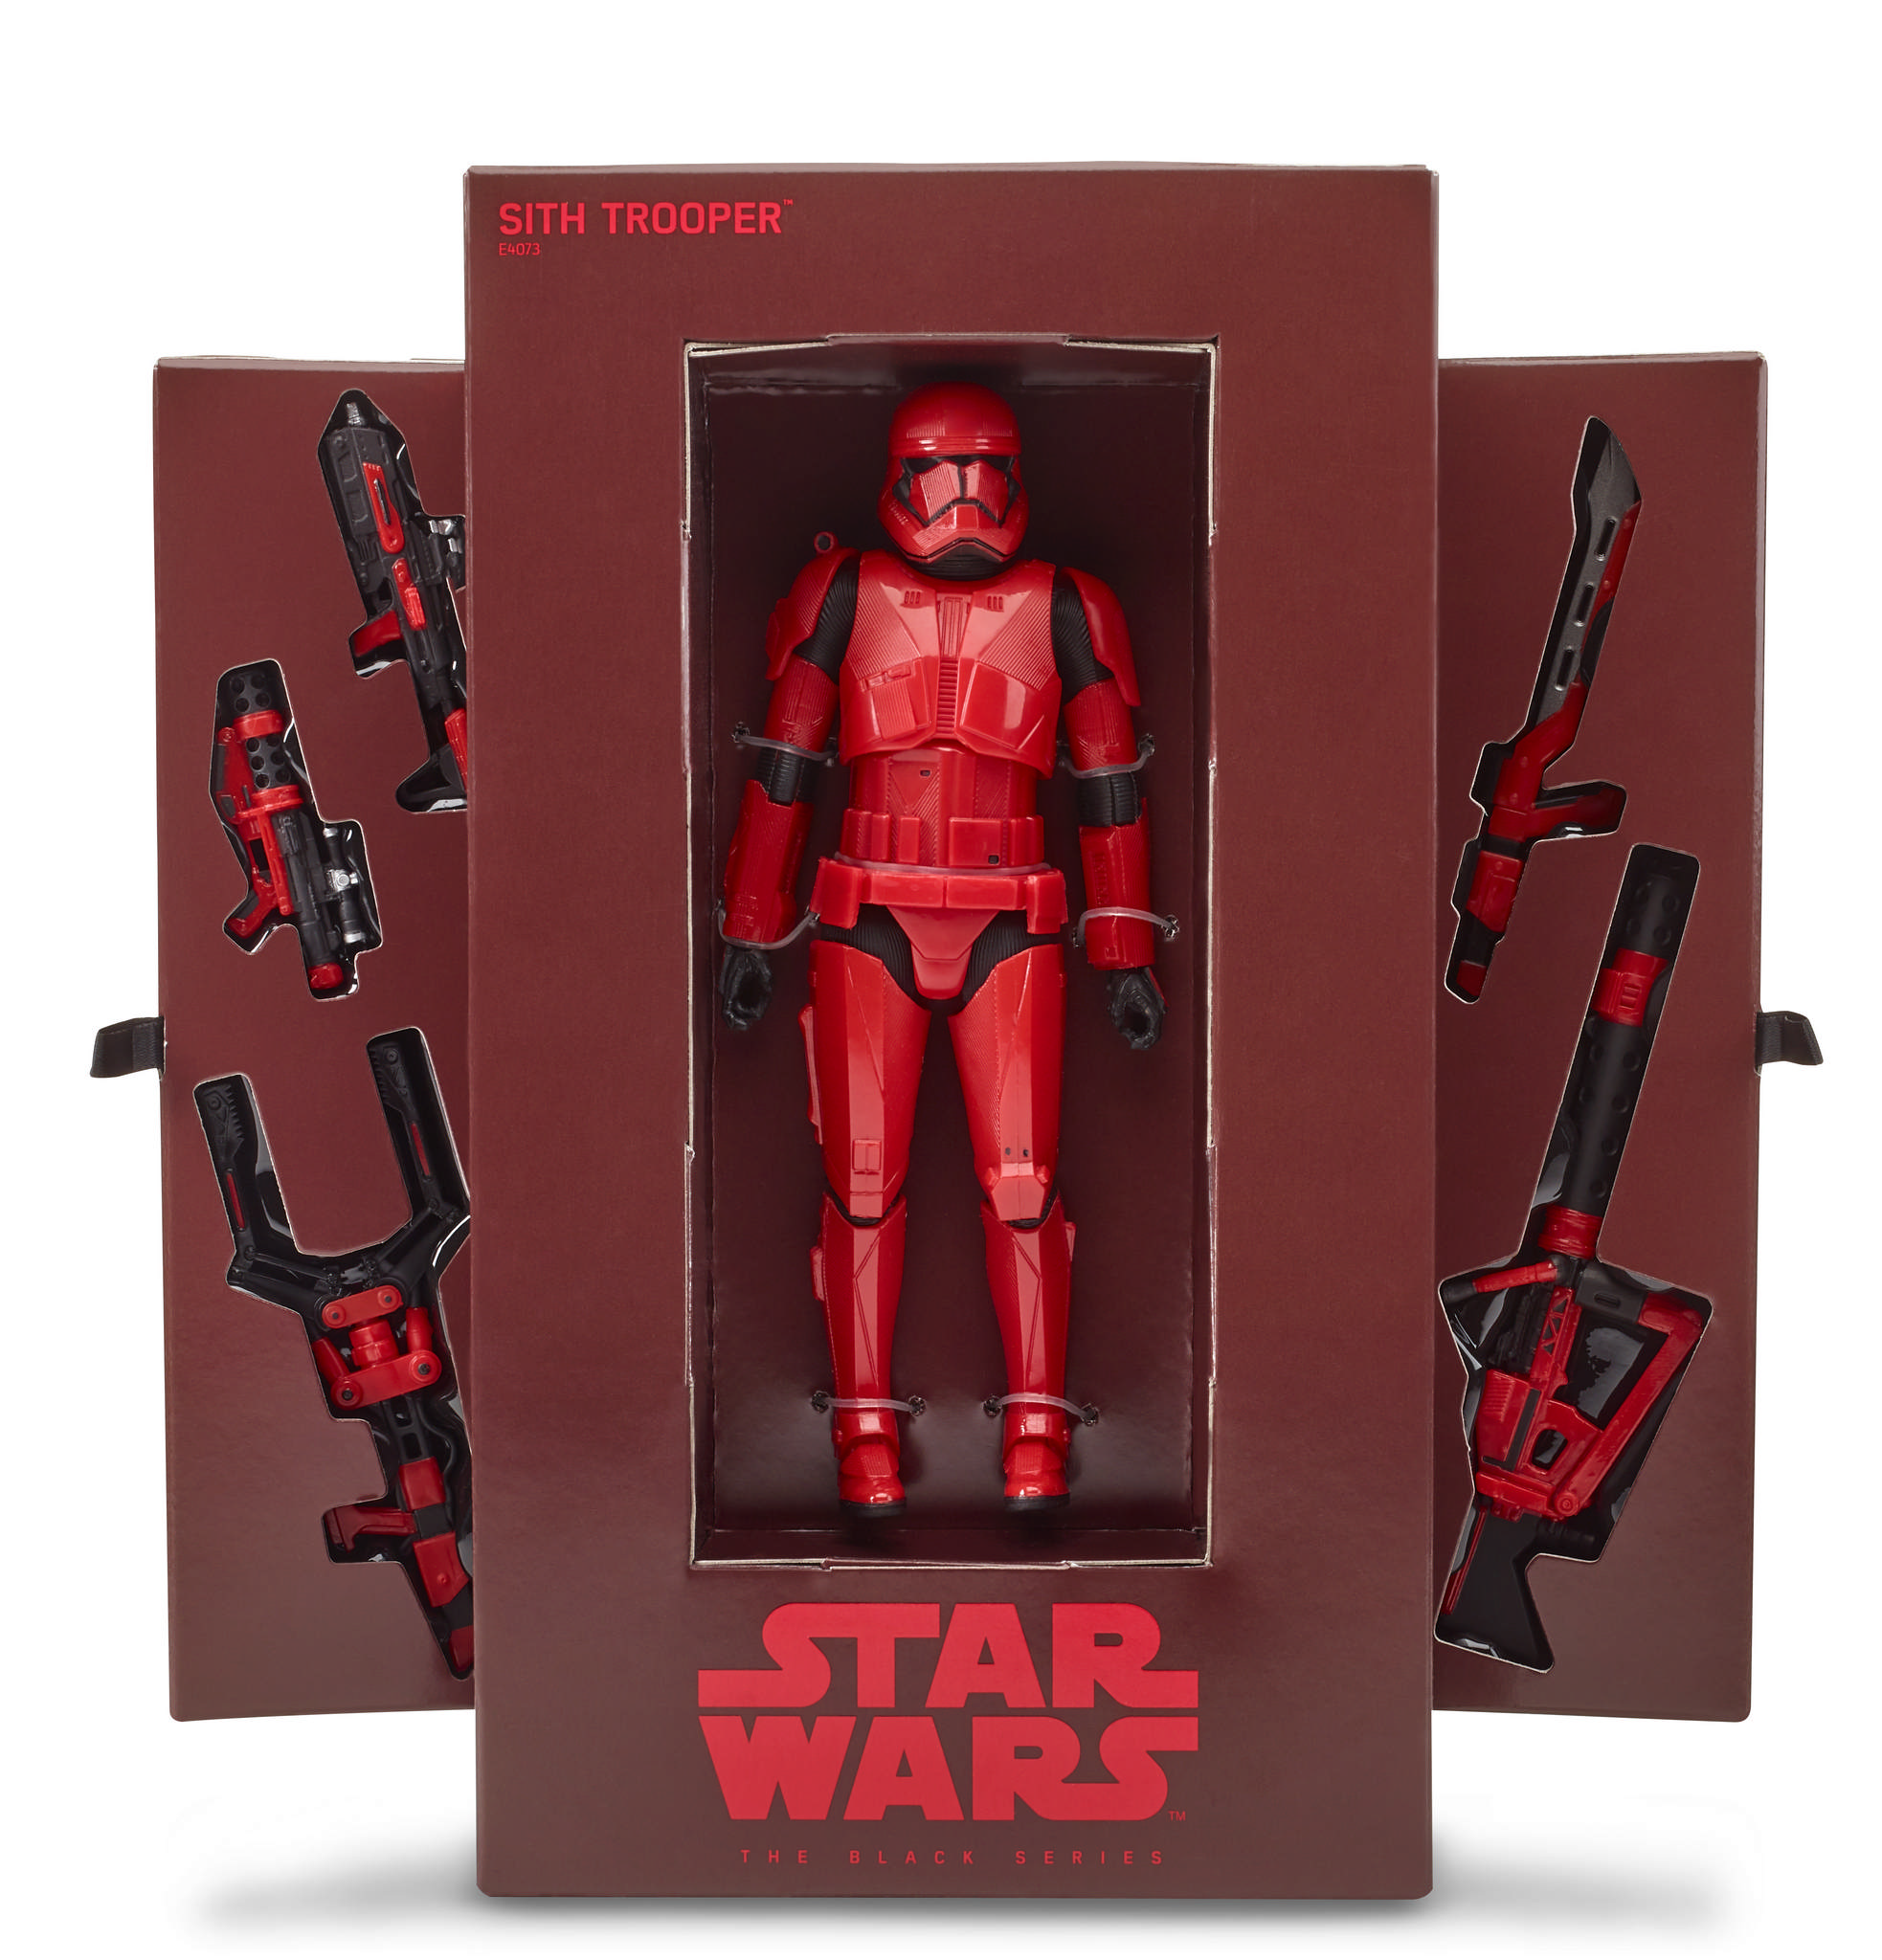 Star Wars Black Series Sith Trooper SDCC 01